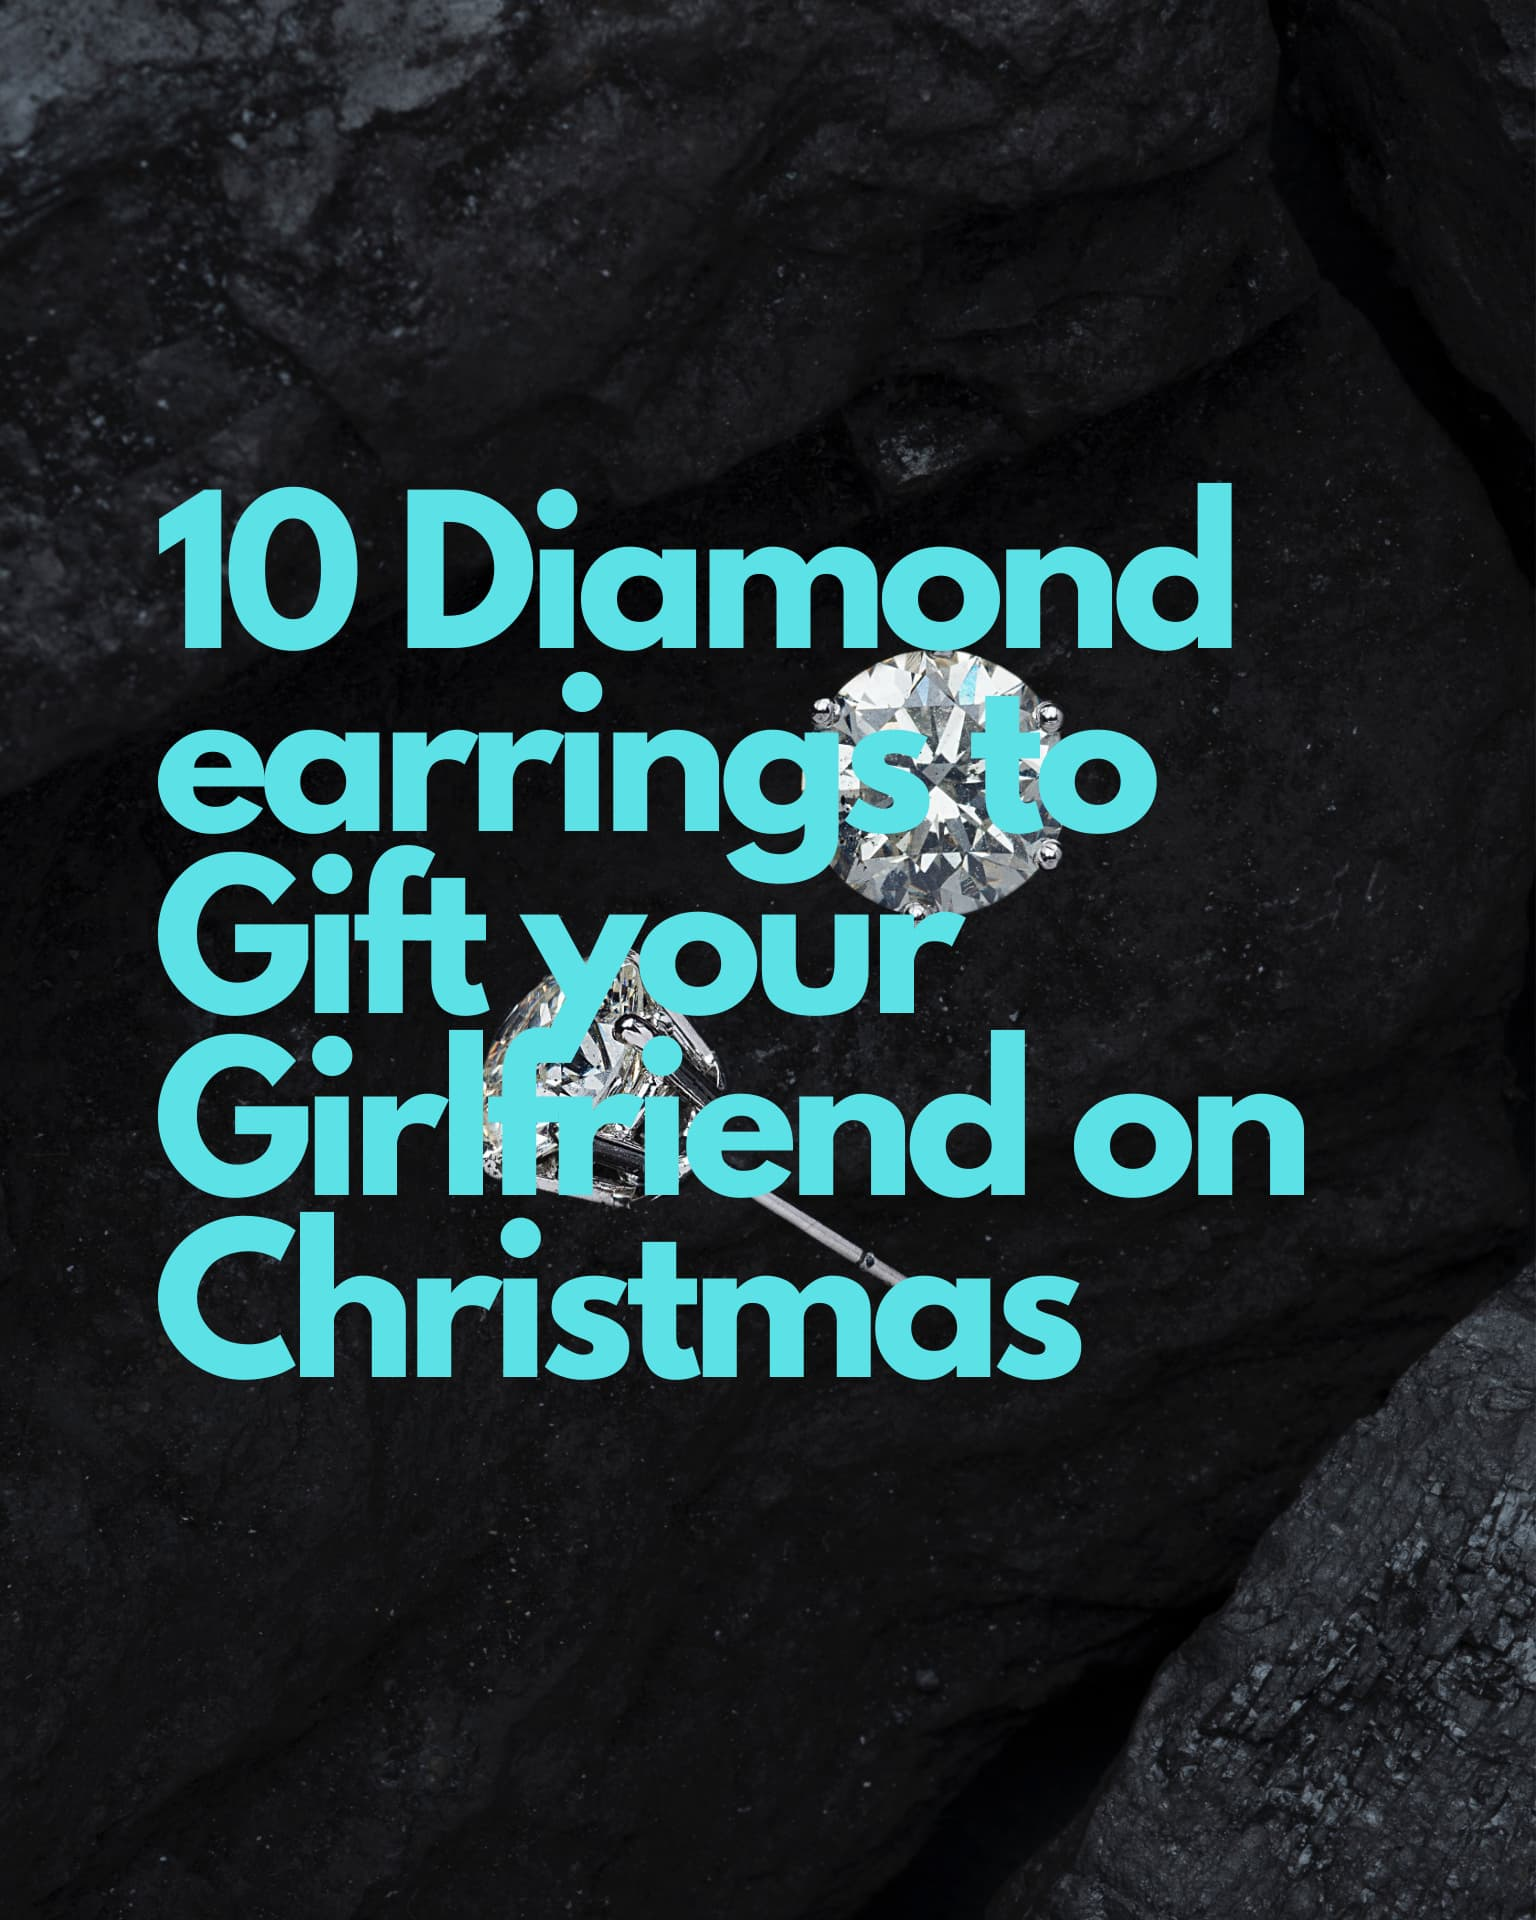 10 Diamond Earrings to Gift your Girlfriend on Christmas